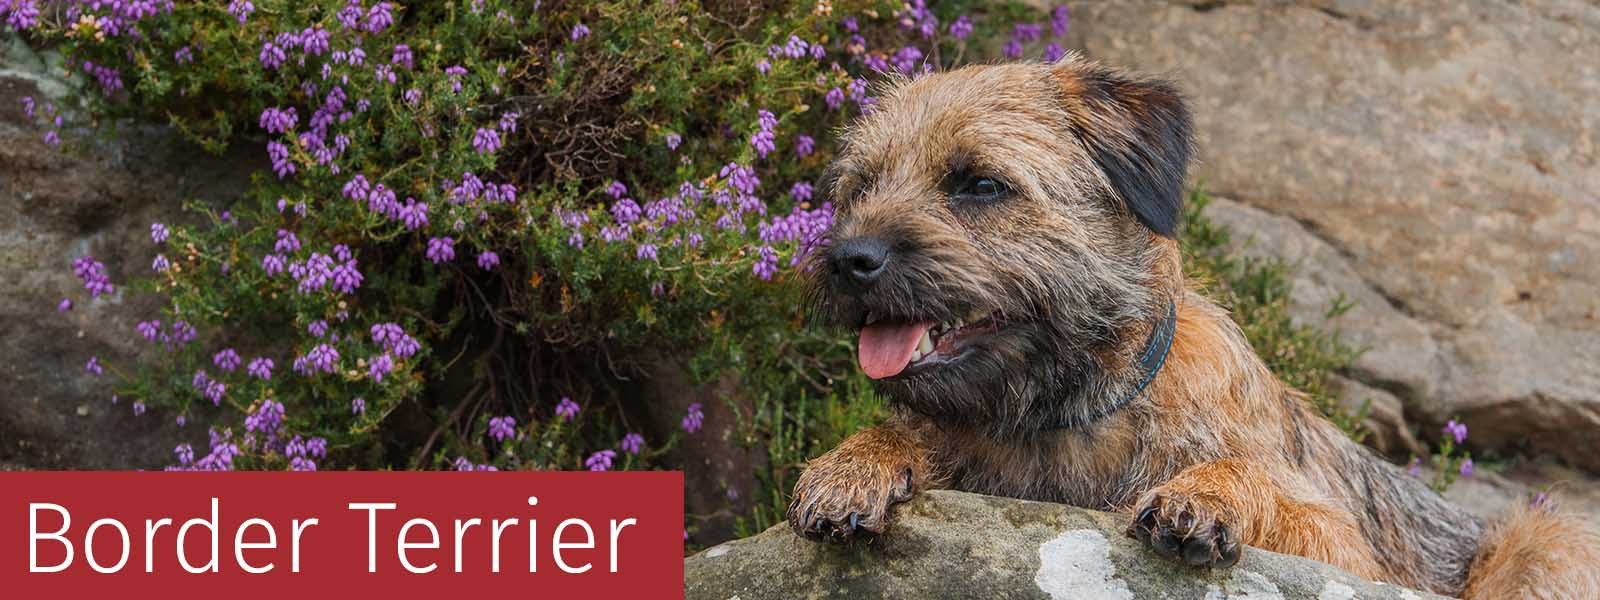 Border Terrier Gifts